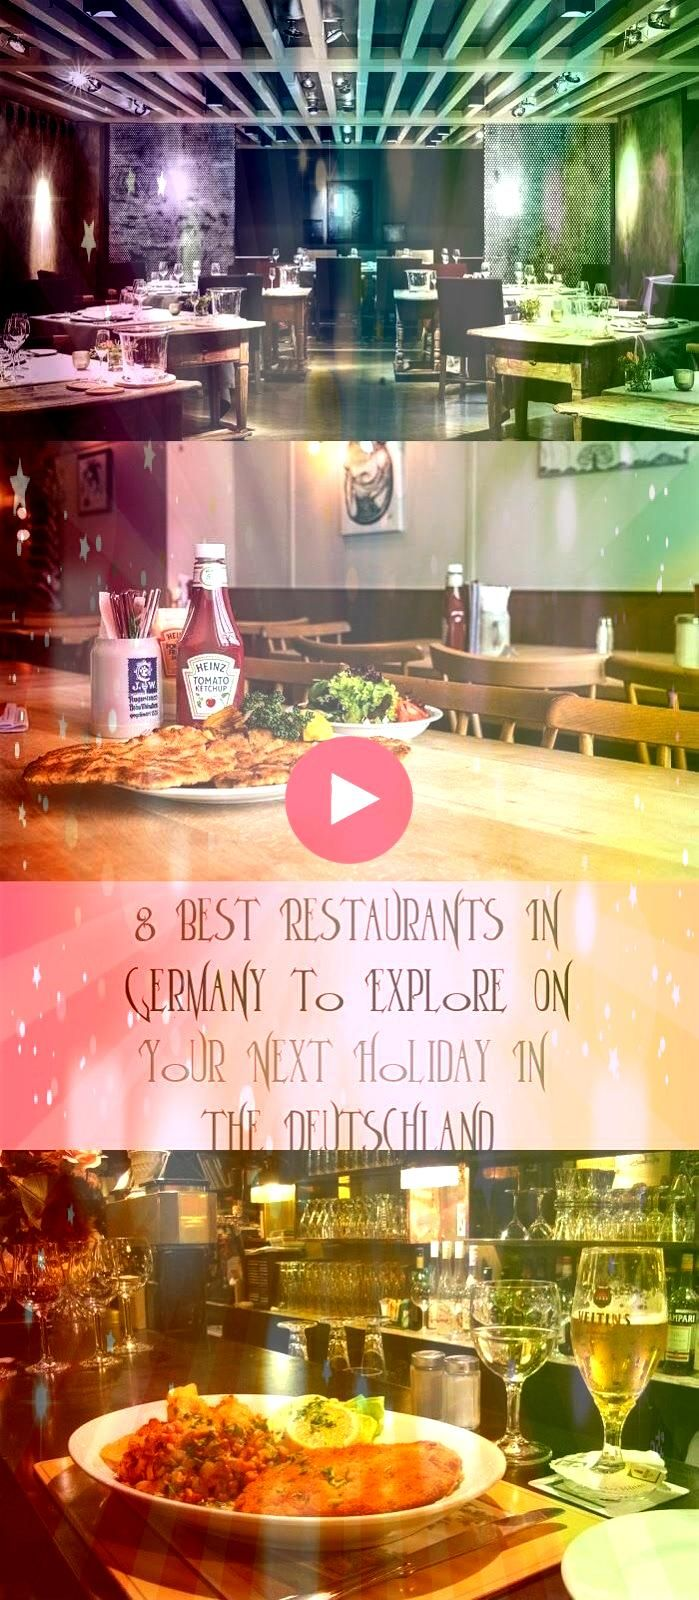 Finest Eating places In Germany To Discover On Your Subsequent Vacation In The Deutschland Eight Finest Eating places In Germany To Discover On Your Subsequent Vacation I...